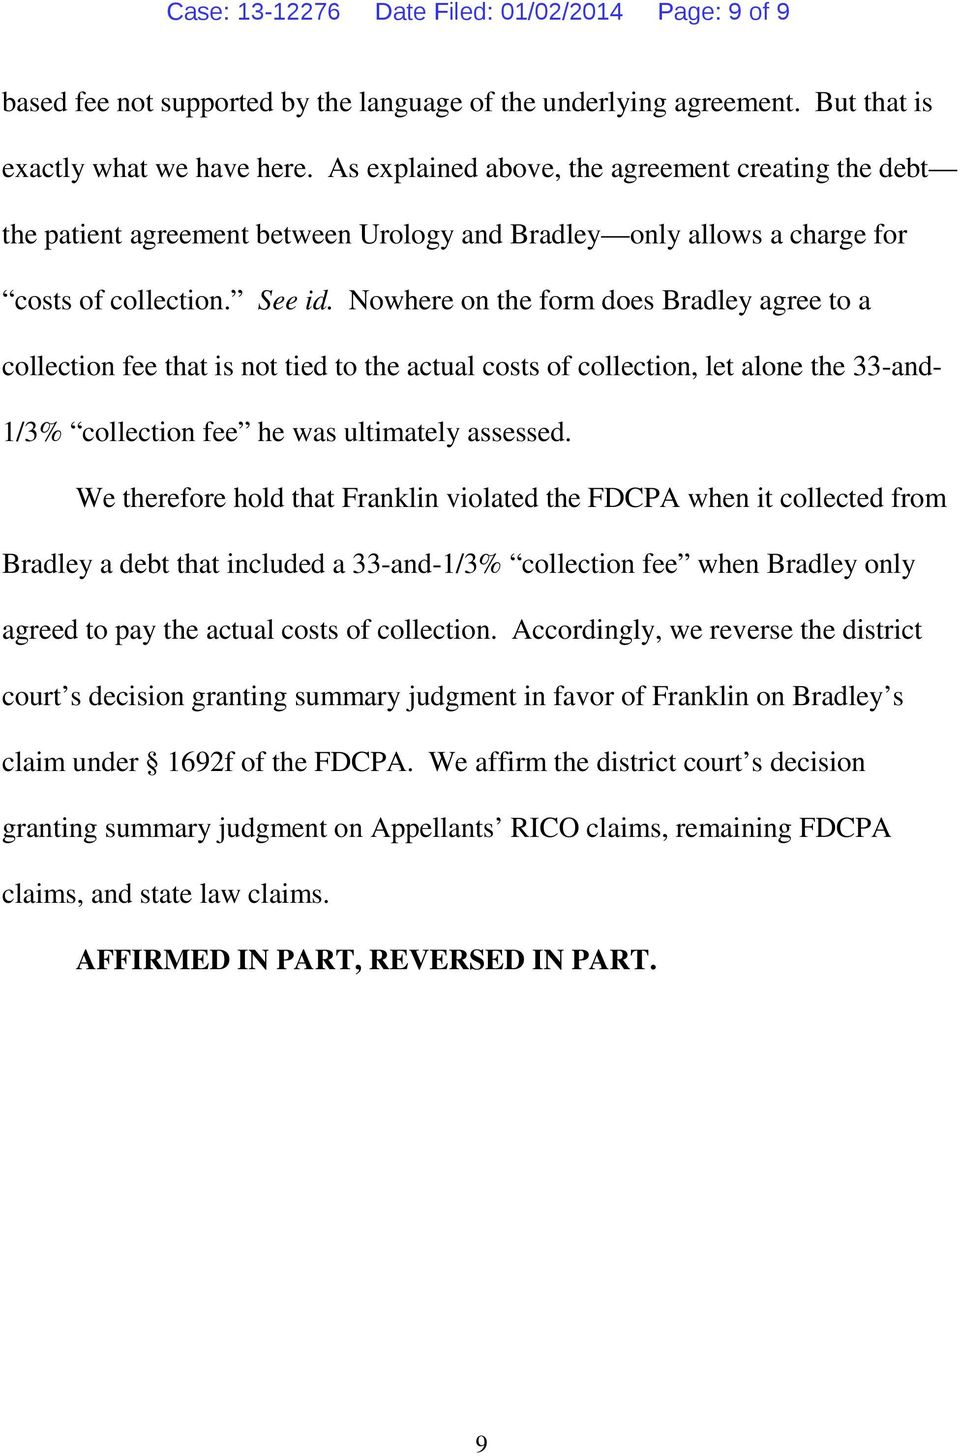 Nowhere on the form does Bradley agree to a collection fee that is not tied to the actual costs of collection, let alone the 33-and- 1/3% collection fee he was ultimately assessed.